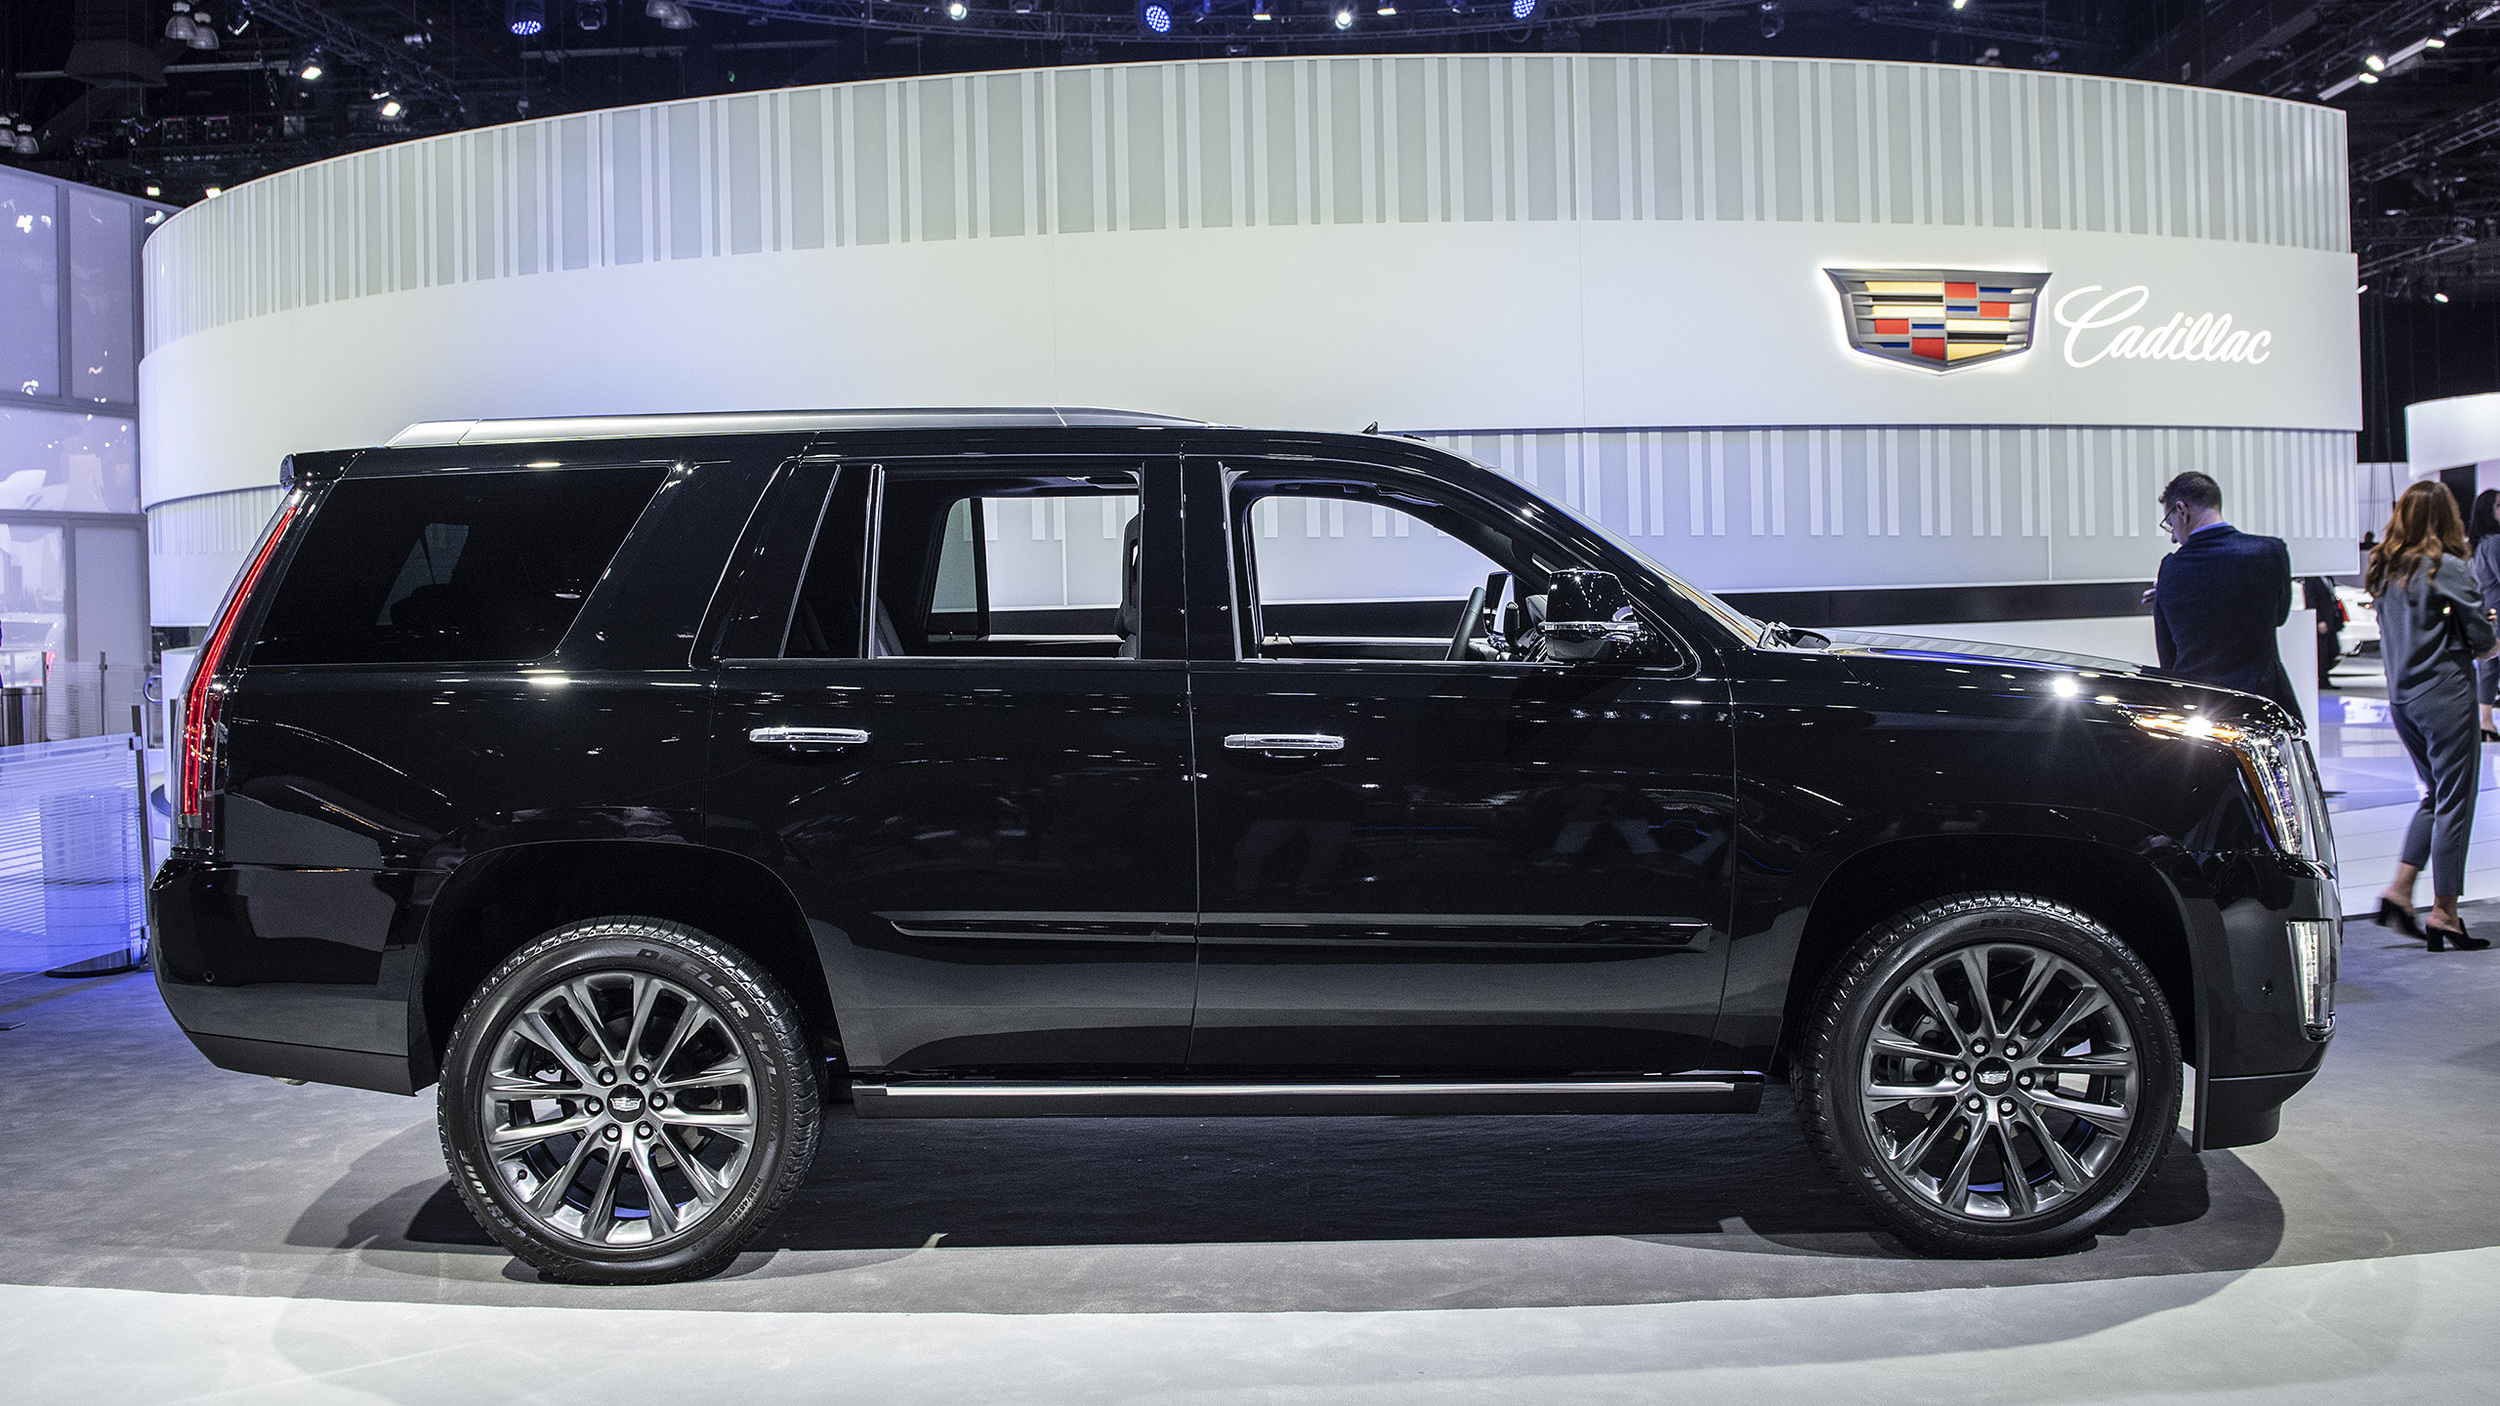 2019 Cadillac Escalade Sport Edition Unveiled In L.A